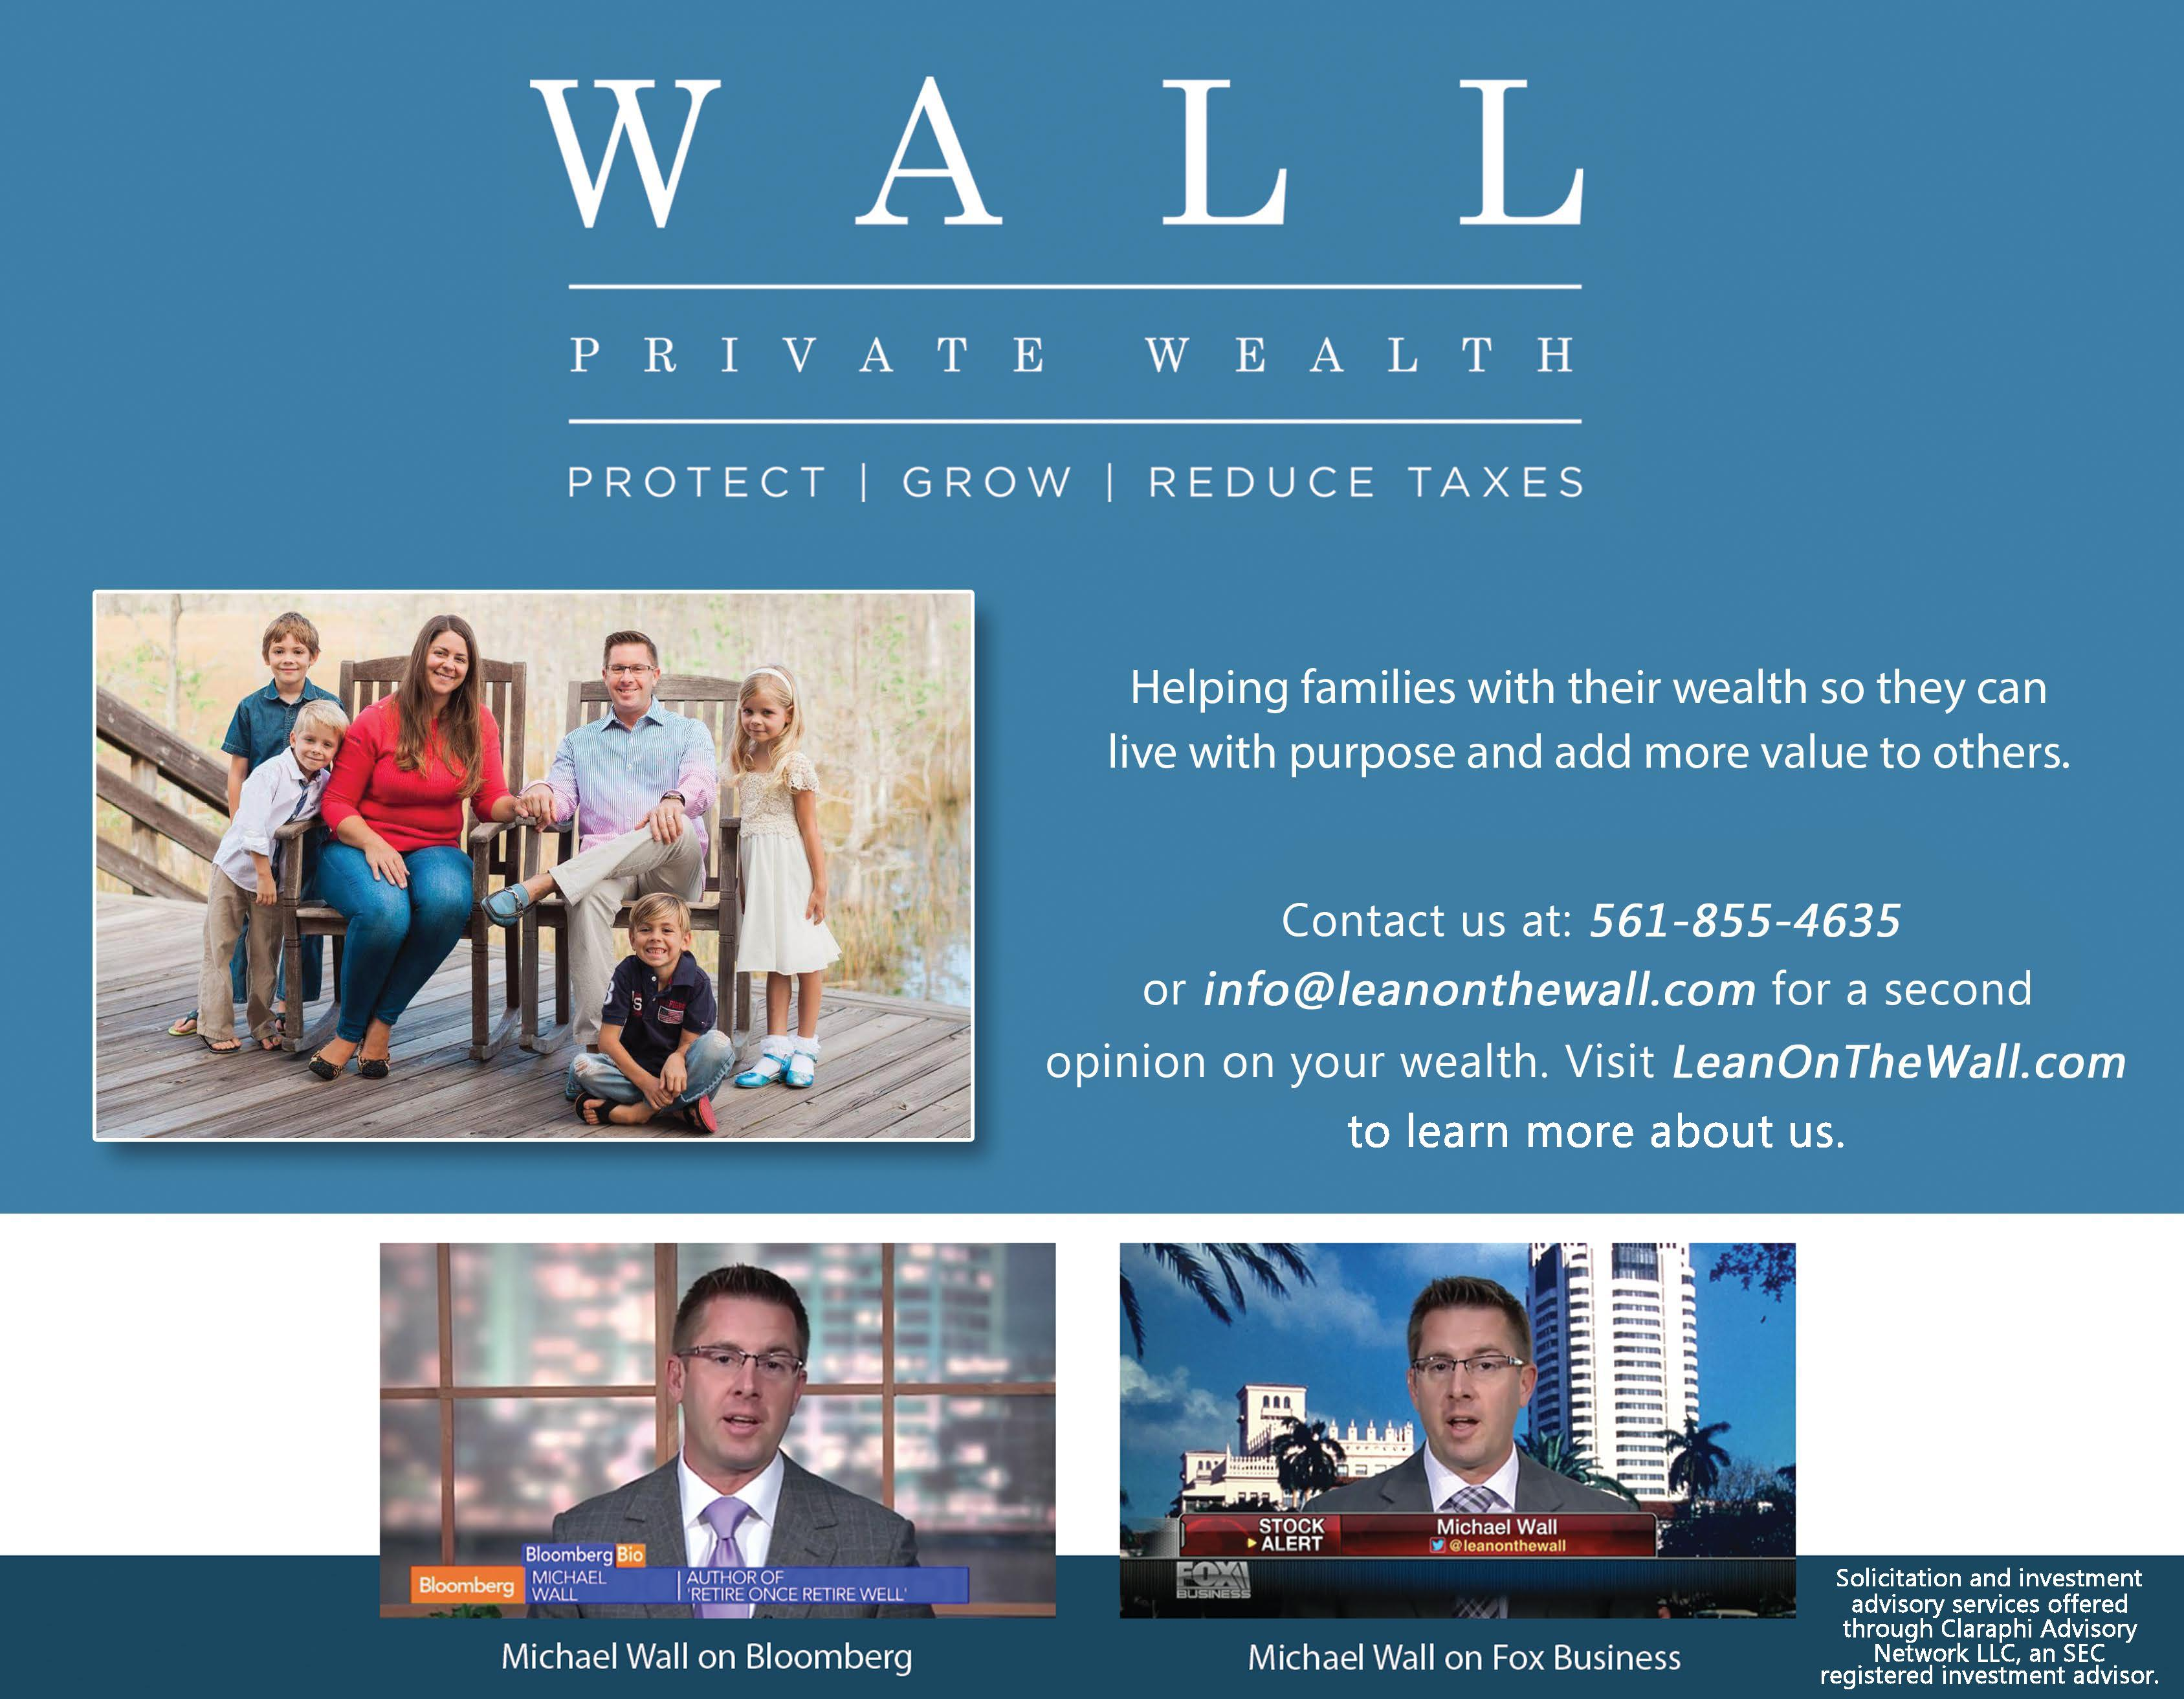 Wall Private Wealth, LLC